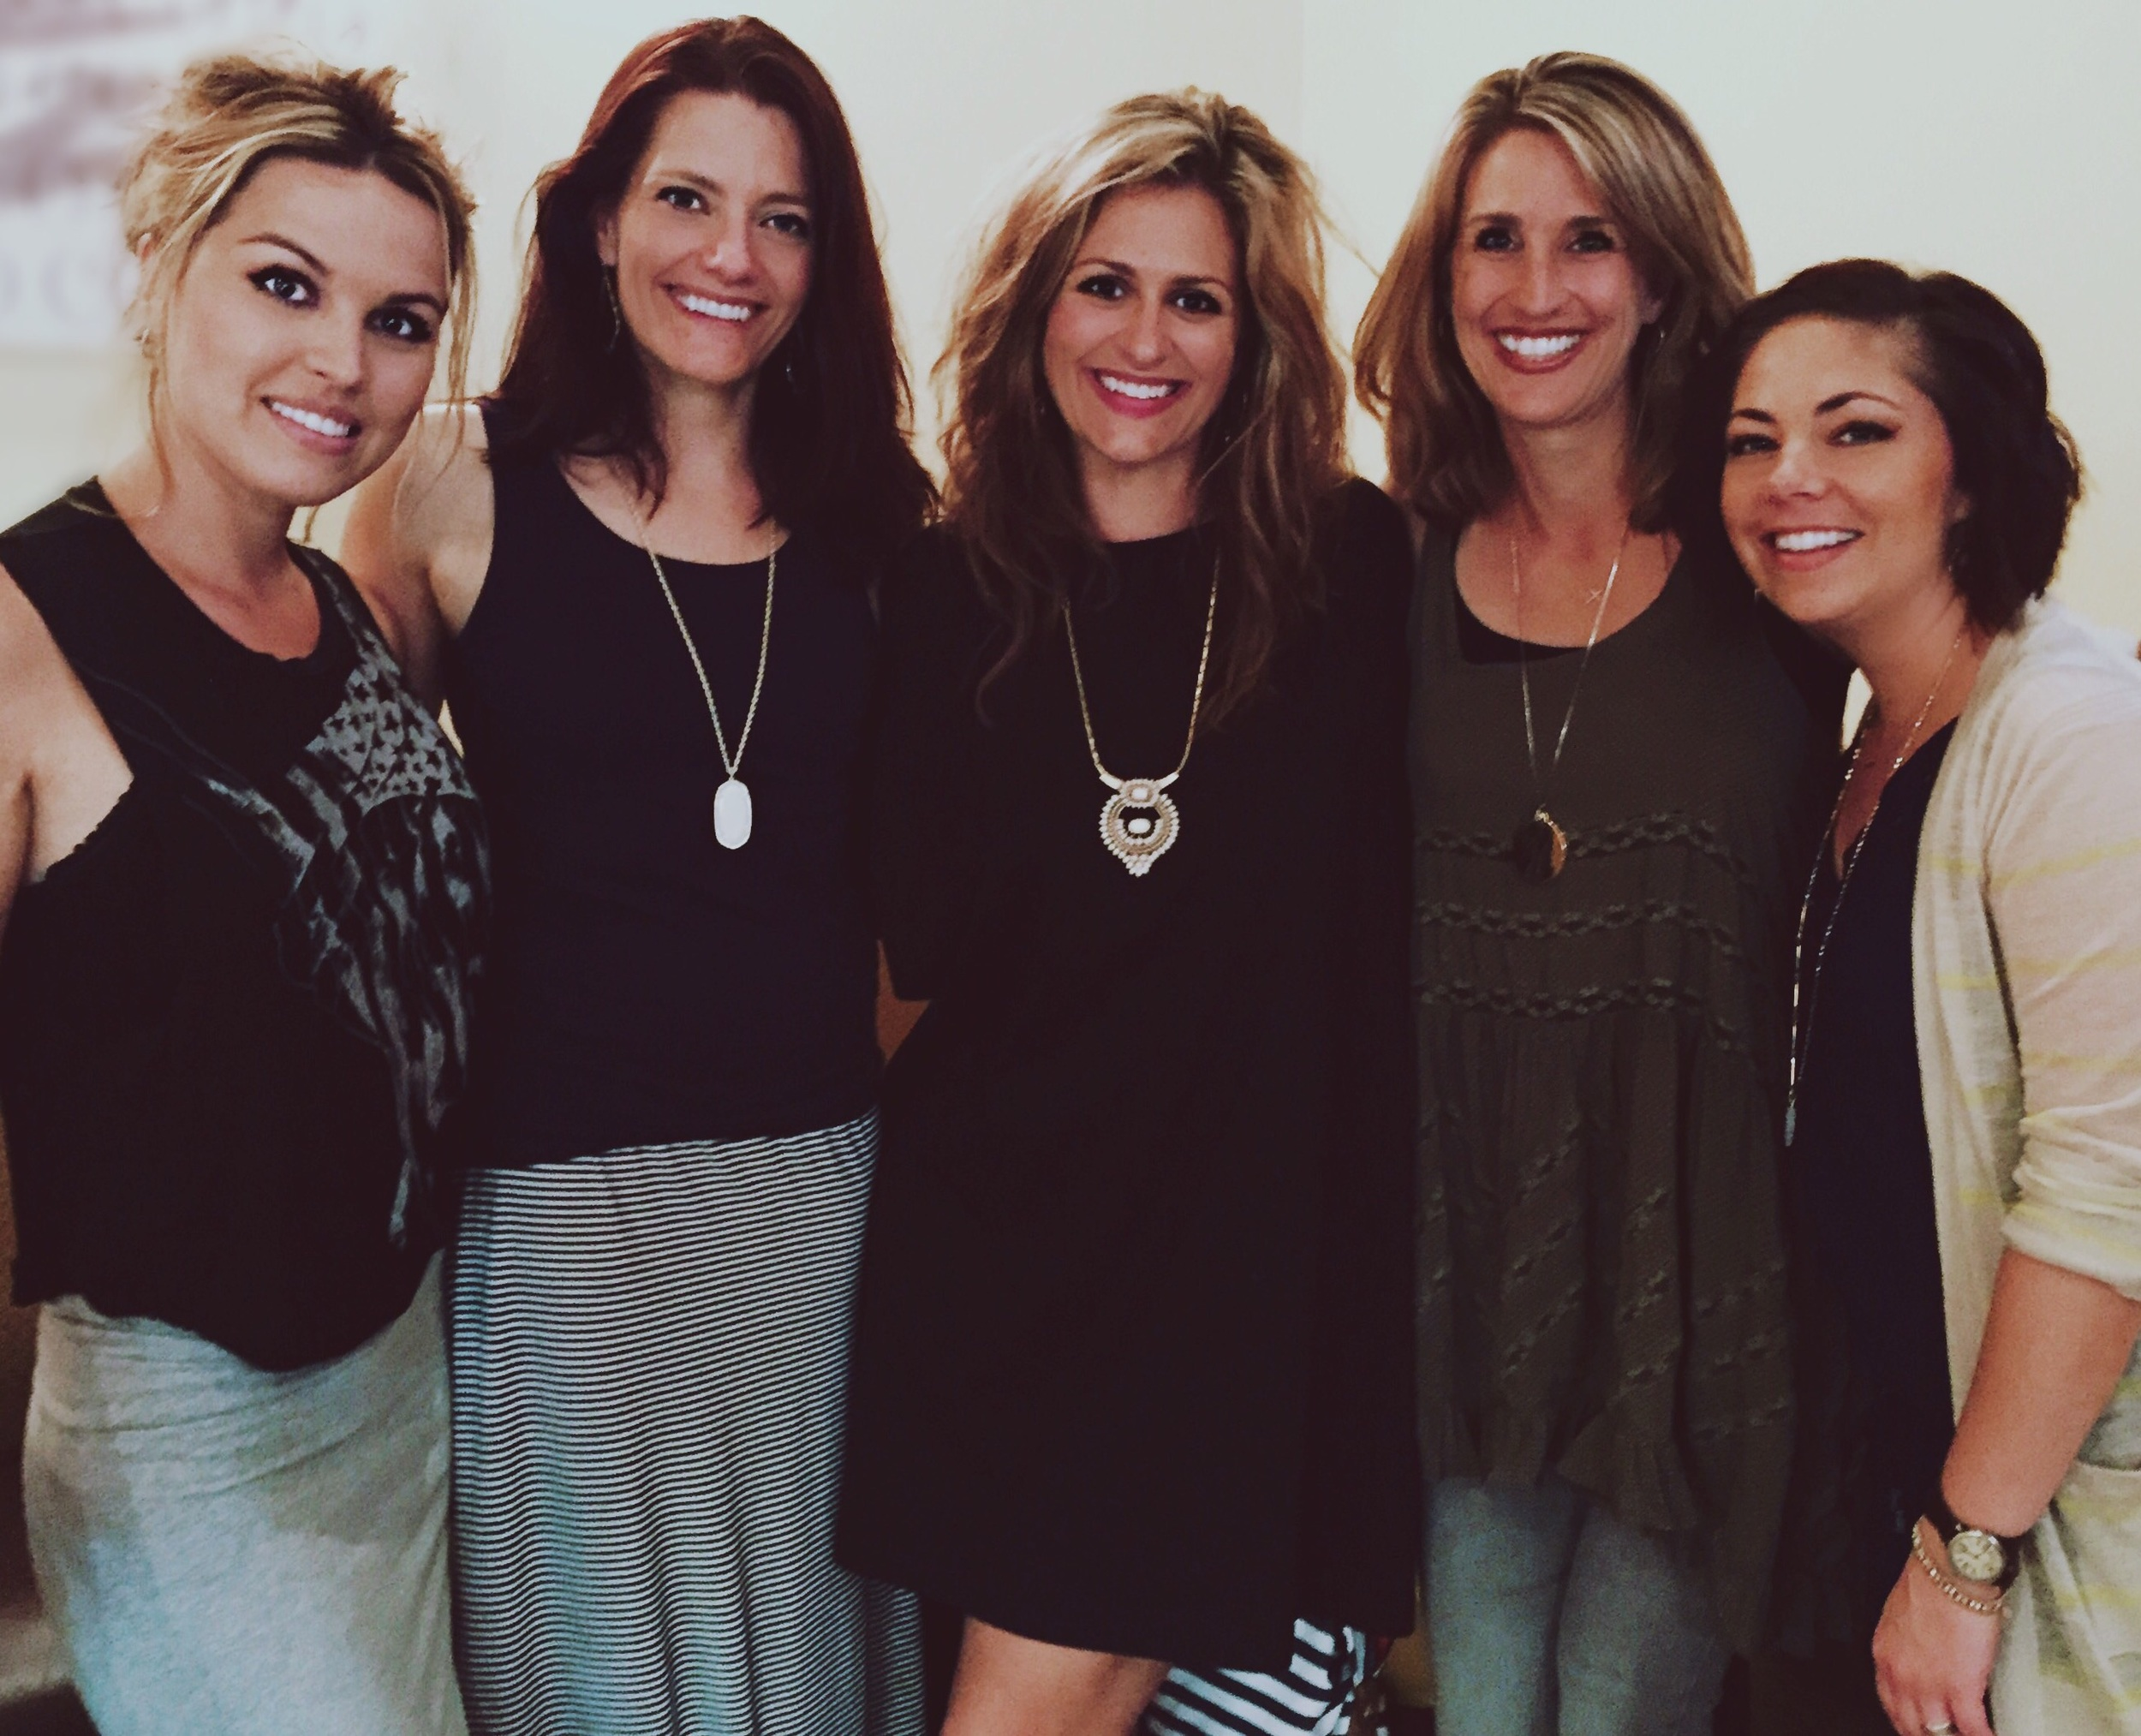 Ending the day with a GNO with some of my favorite people!